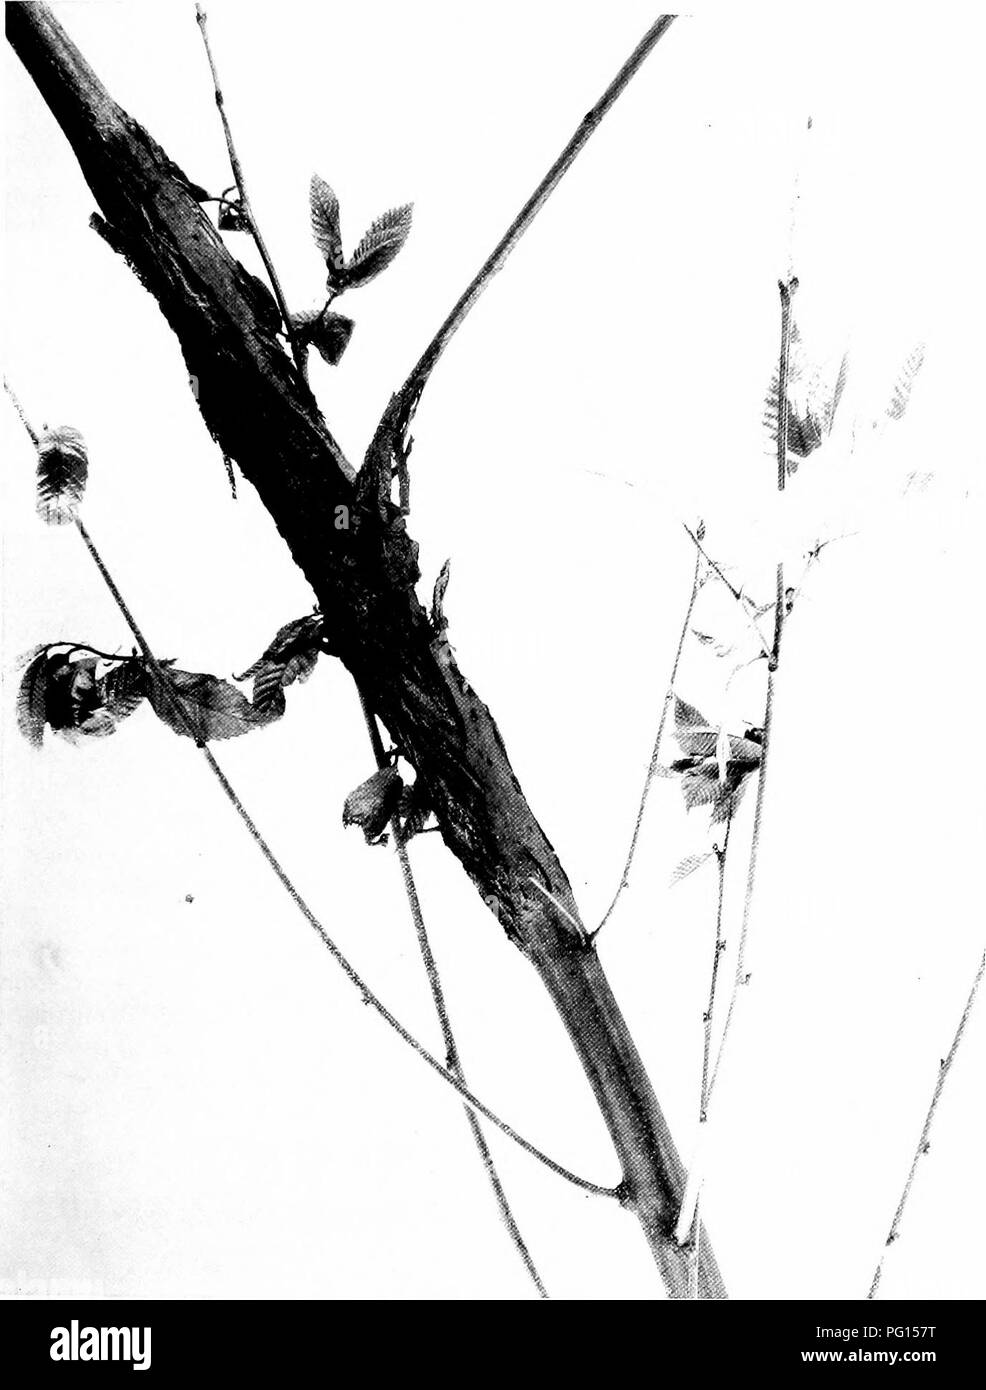 Fence Poles Black And White Stock Photos Images Alamy Wiring A Cordwood House Chestnut Blight Resistant Chestnuts 1 I